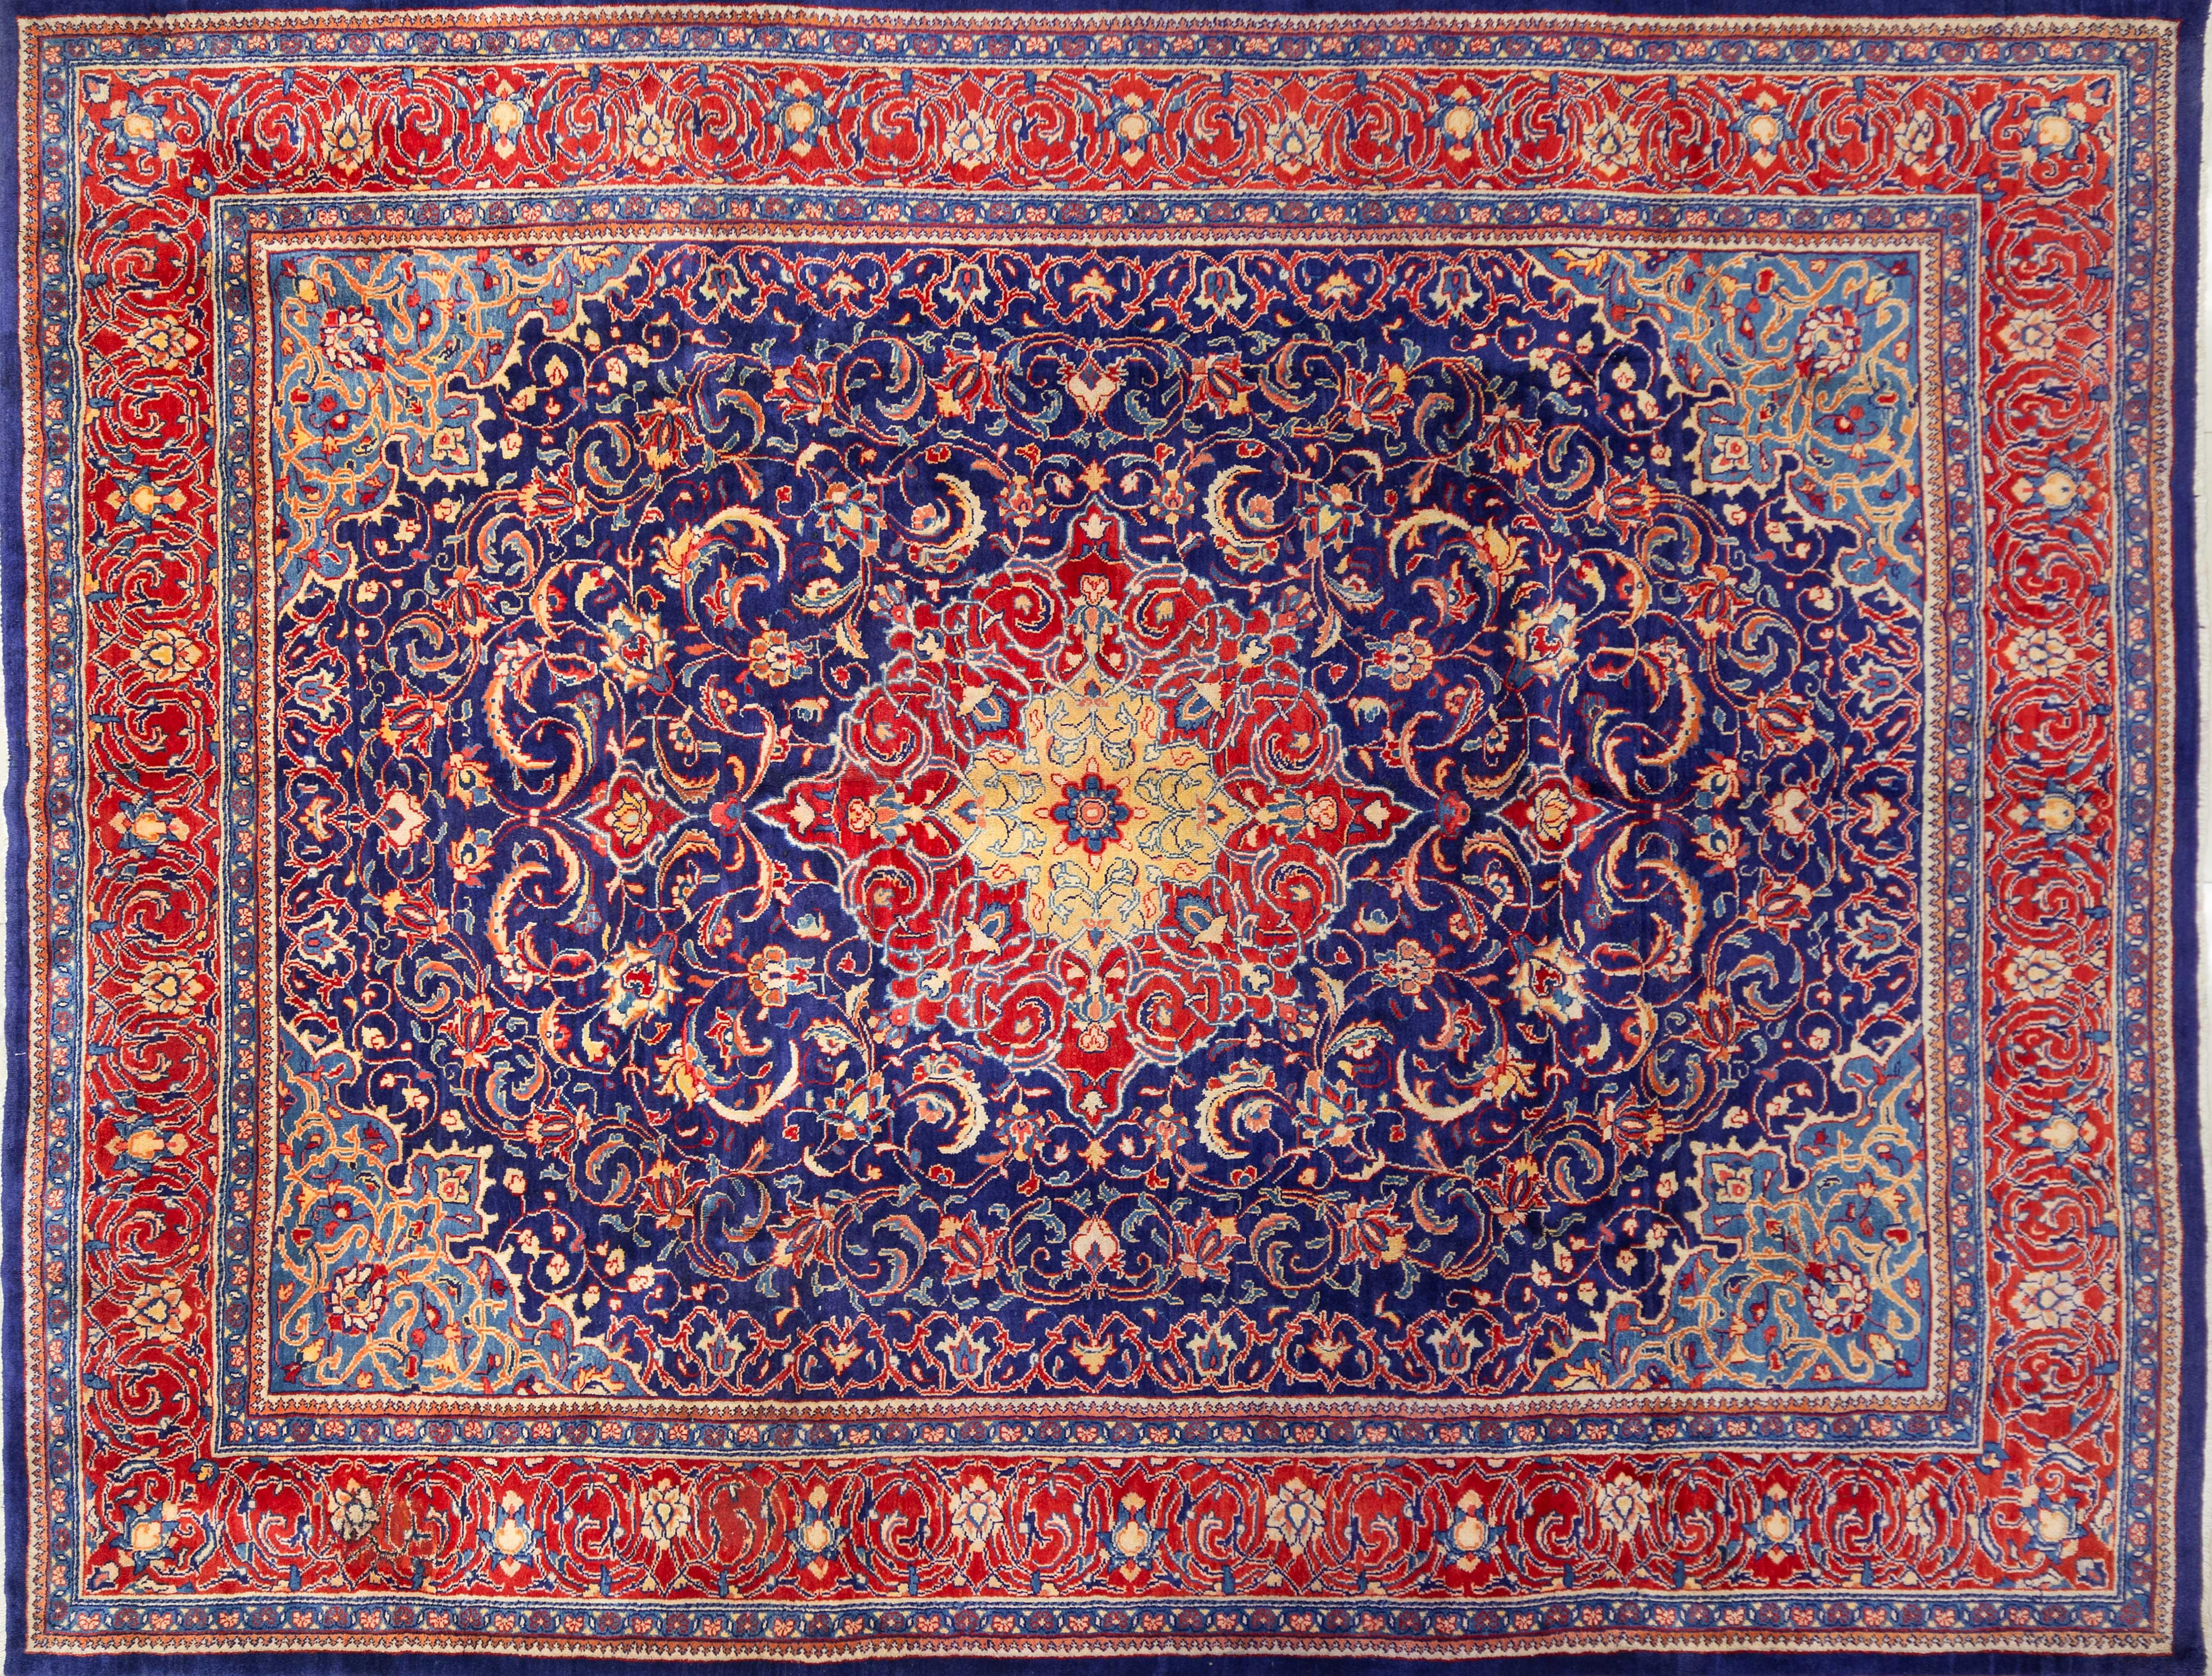 A Persian Hand Knotted Mashad Carpet, 390 x 300